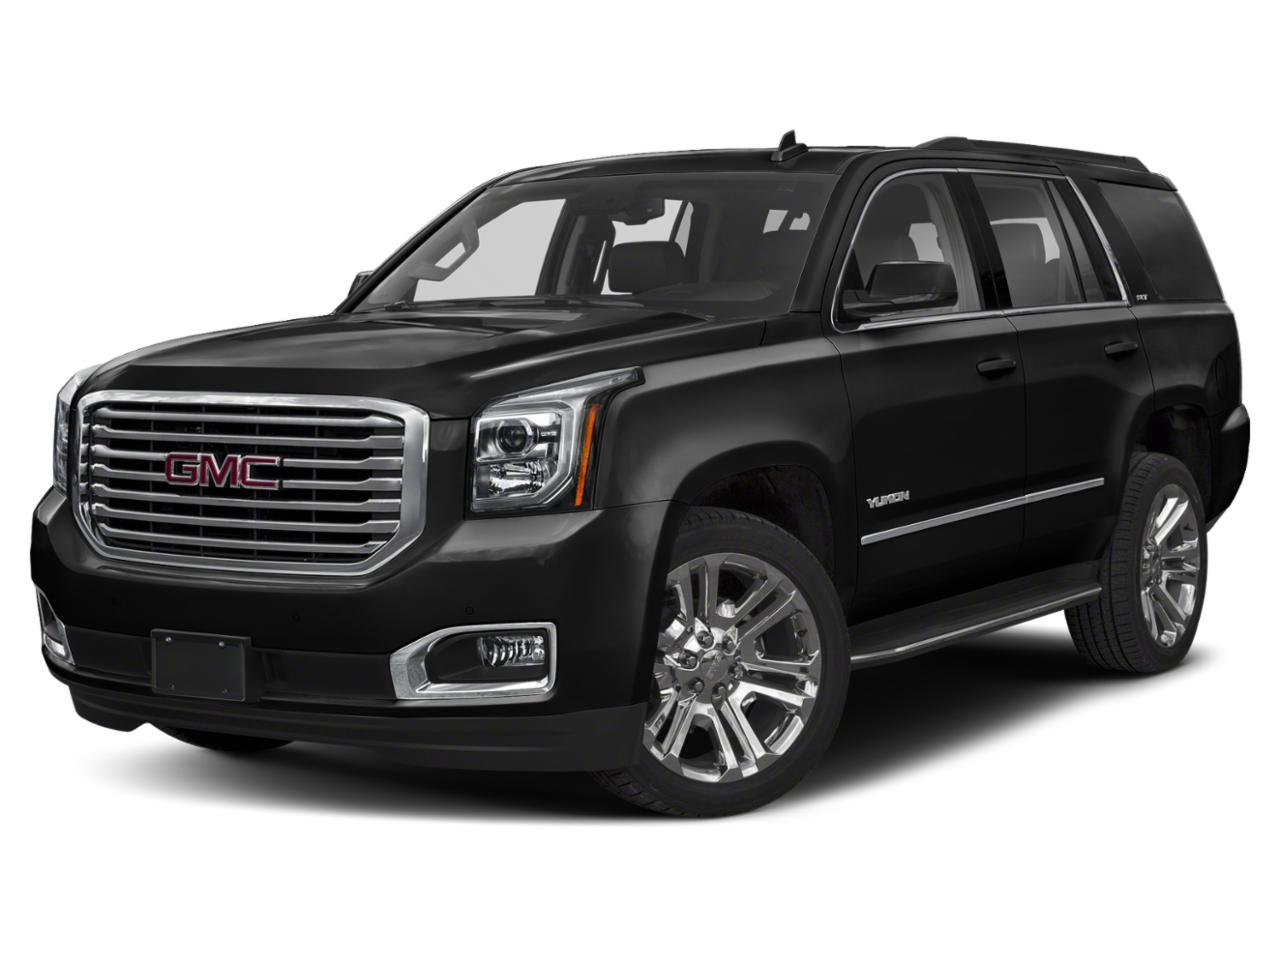 2020 GMC Yukon Vehicle Photo in Gainesville, FL 32609